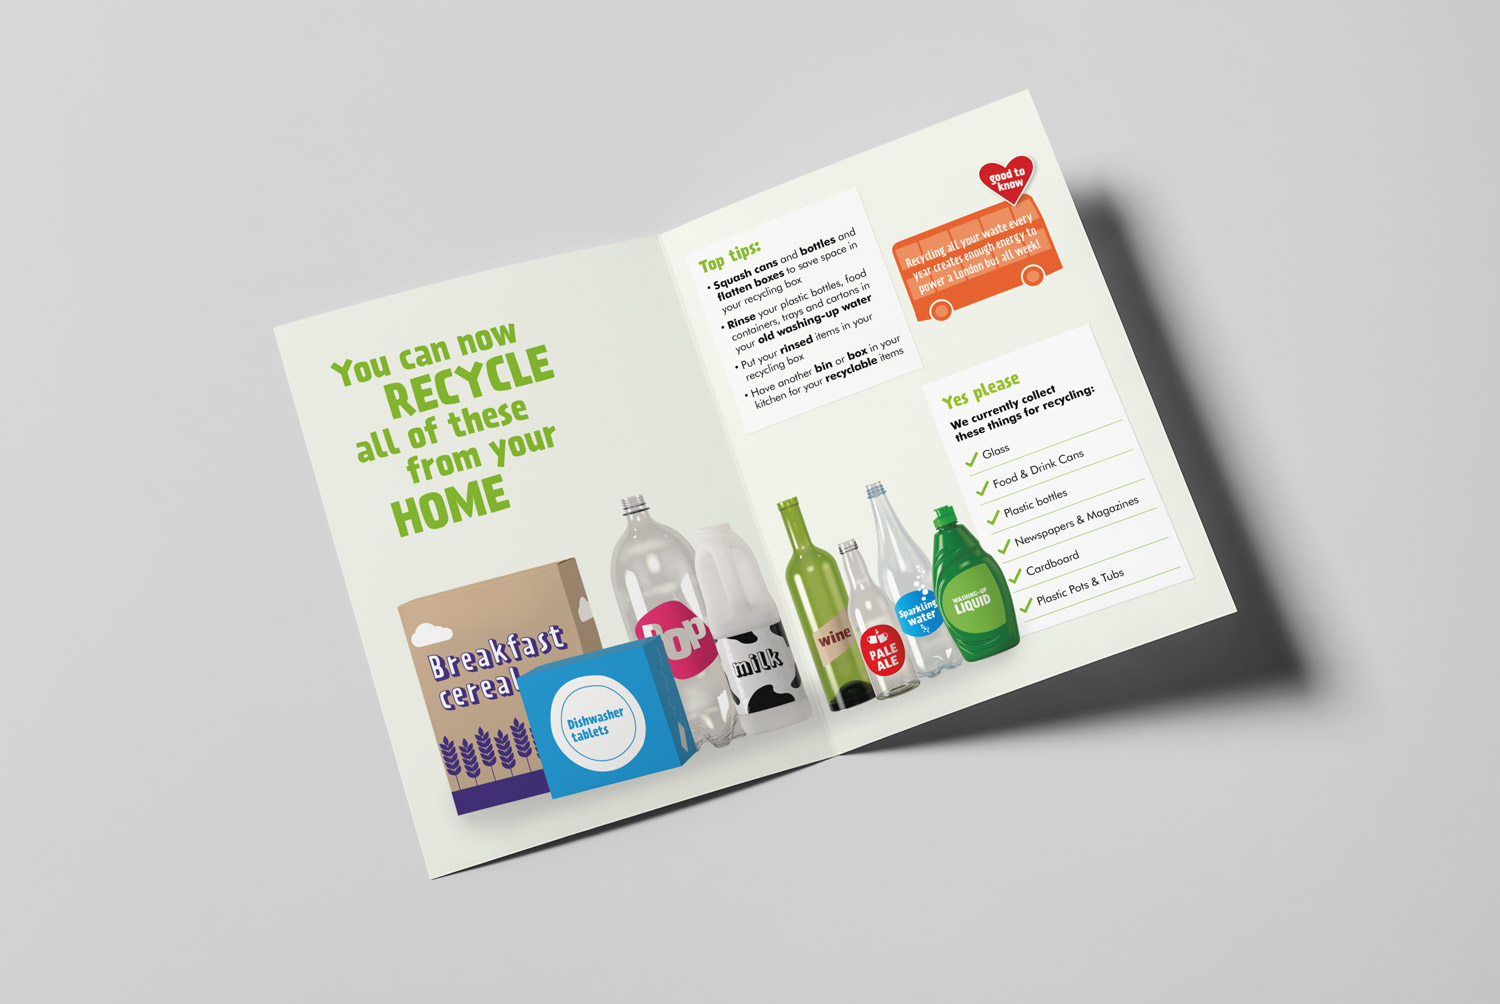 Recycle-for-London-Recycling-Leaflet-inside-spreads-by-Get-it-Sorted.jpg